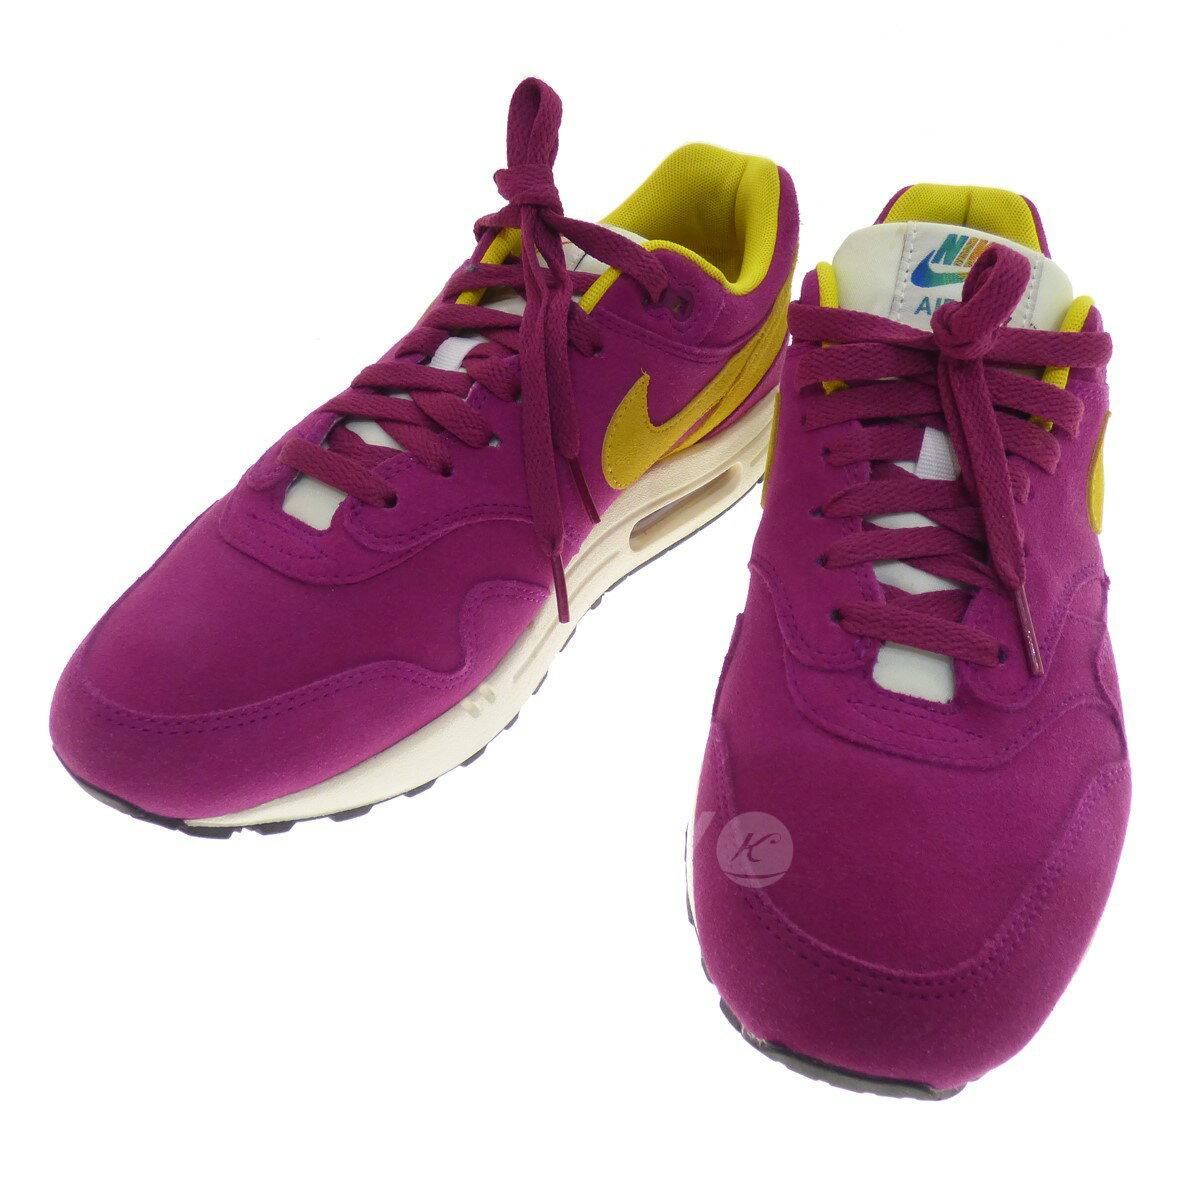 timeless design 40f8c 76ce8 NIKE AIR MAX 90 PREMIUM low-frequency cut sneakers purple size: 27 5 (Nike)